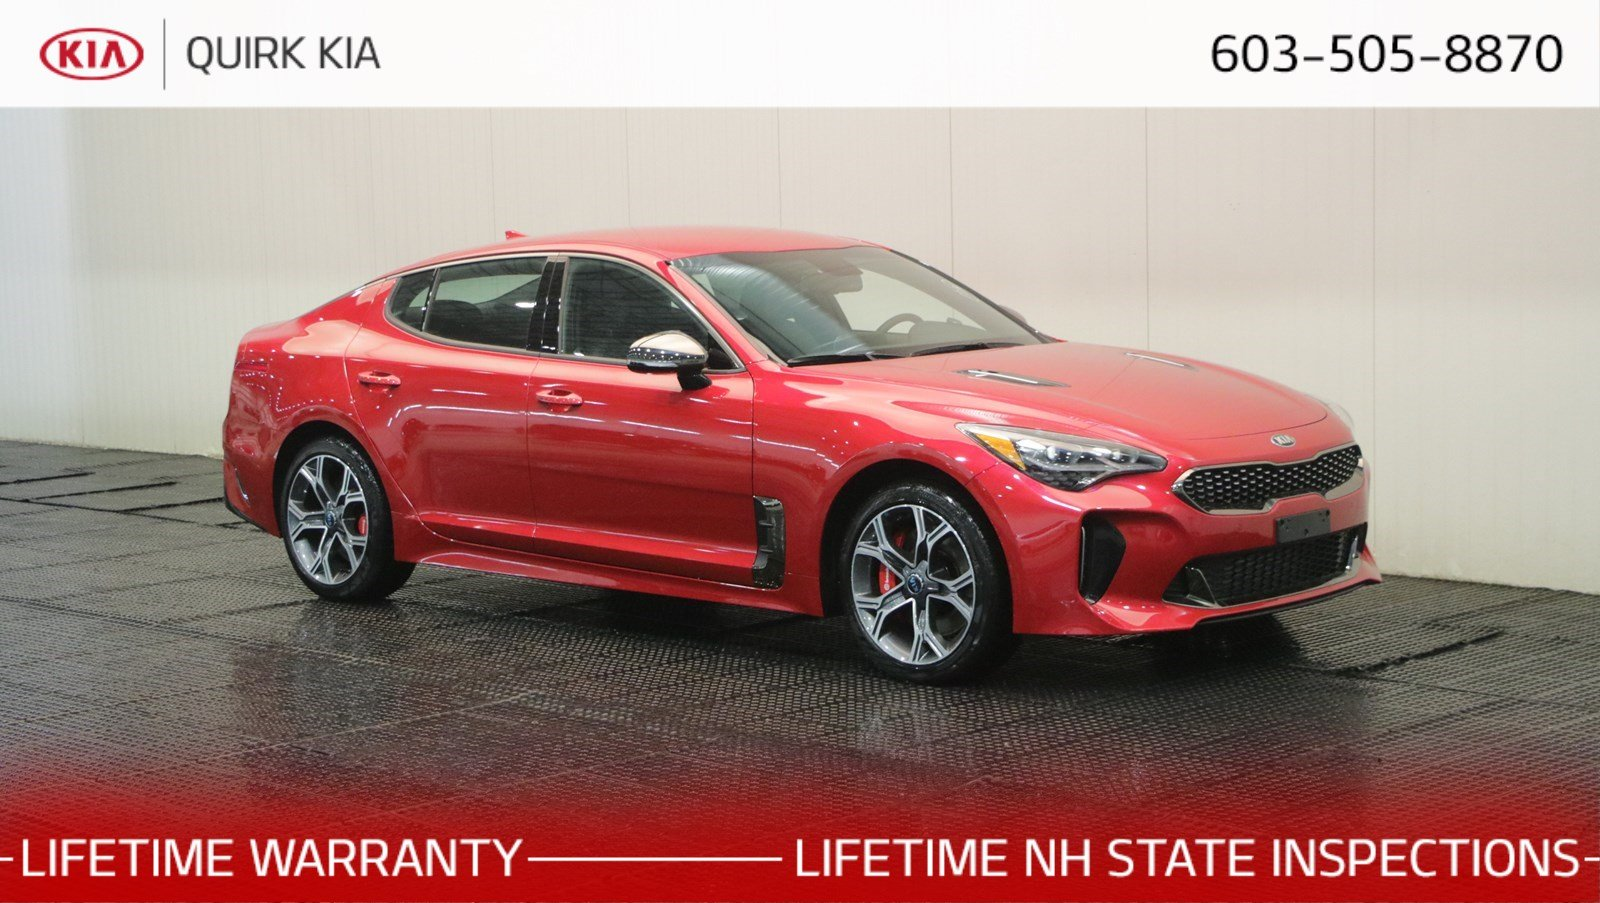 New 2019 Kia Stinger Gt 4dr Car In Manchester Ks3164 Quirk Kia